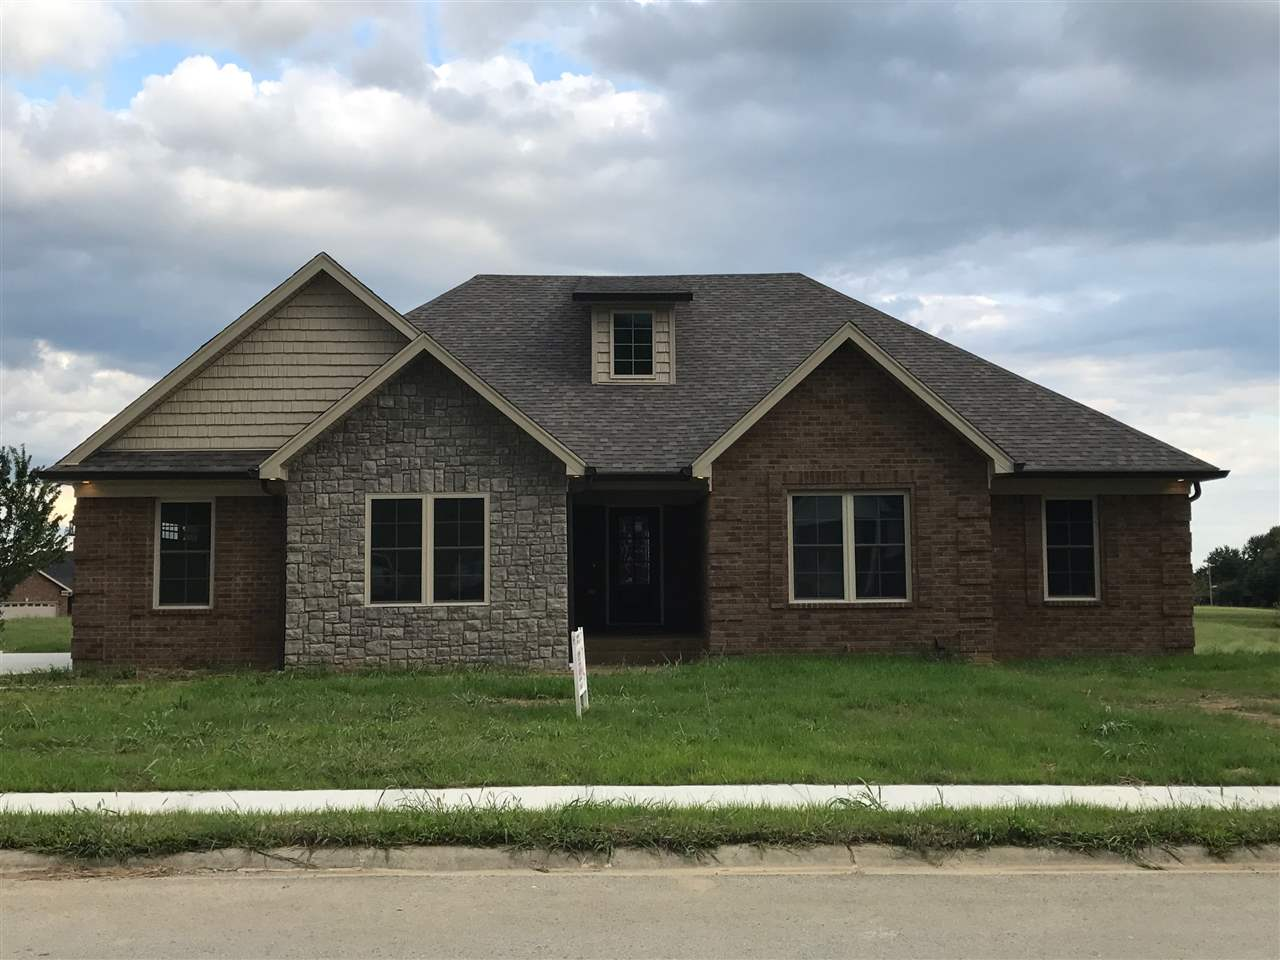 113 Lorenza Circle, Bardstown, KY 40004